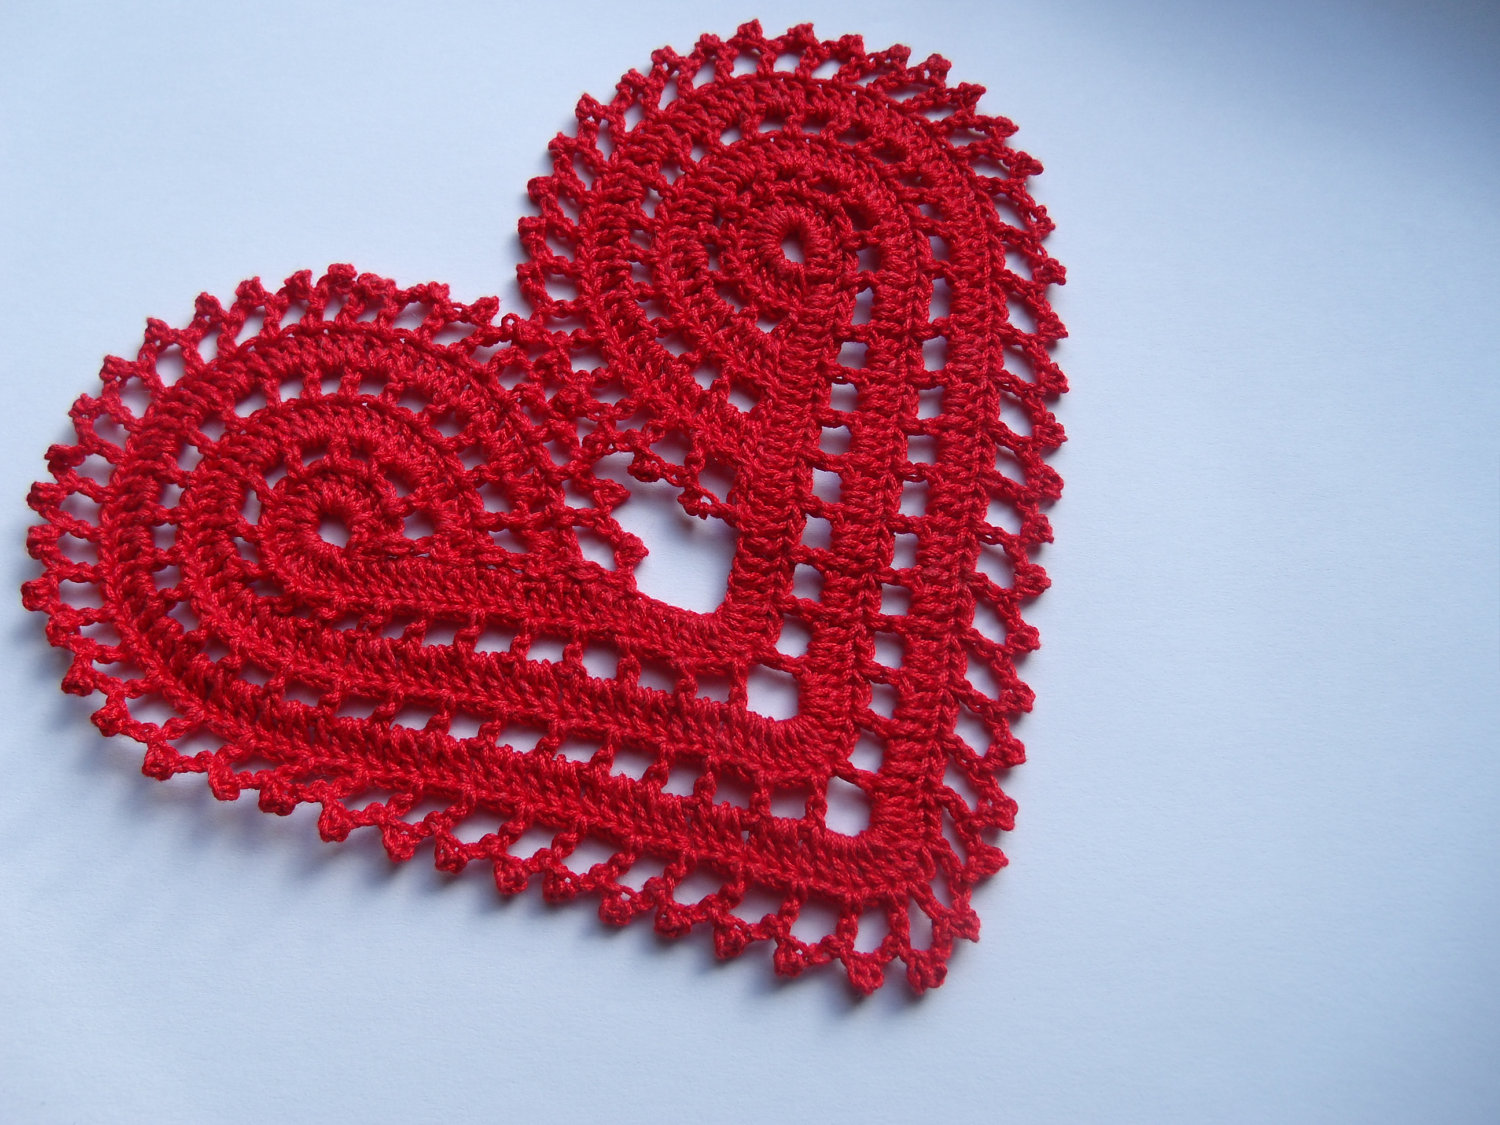 Crochet Heart : ... for women: crocheted heart for fashion make handmade, crochet, craft